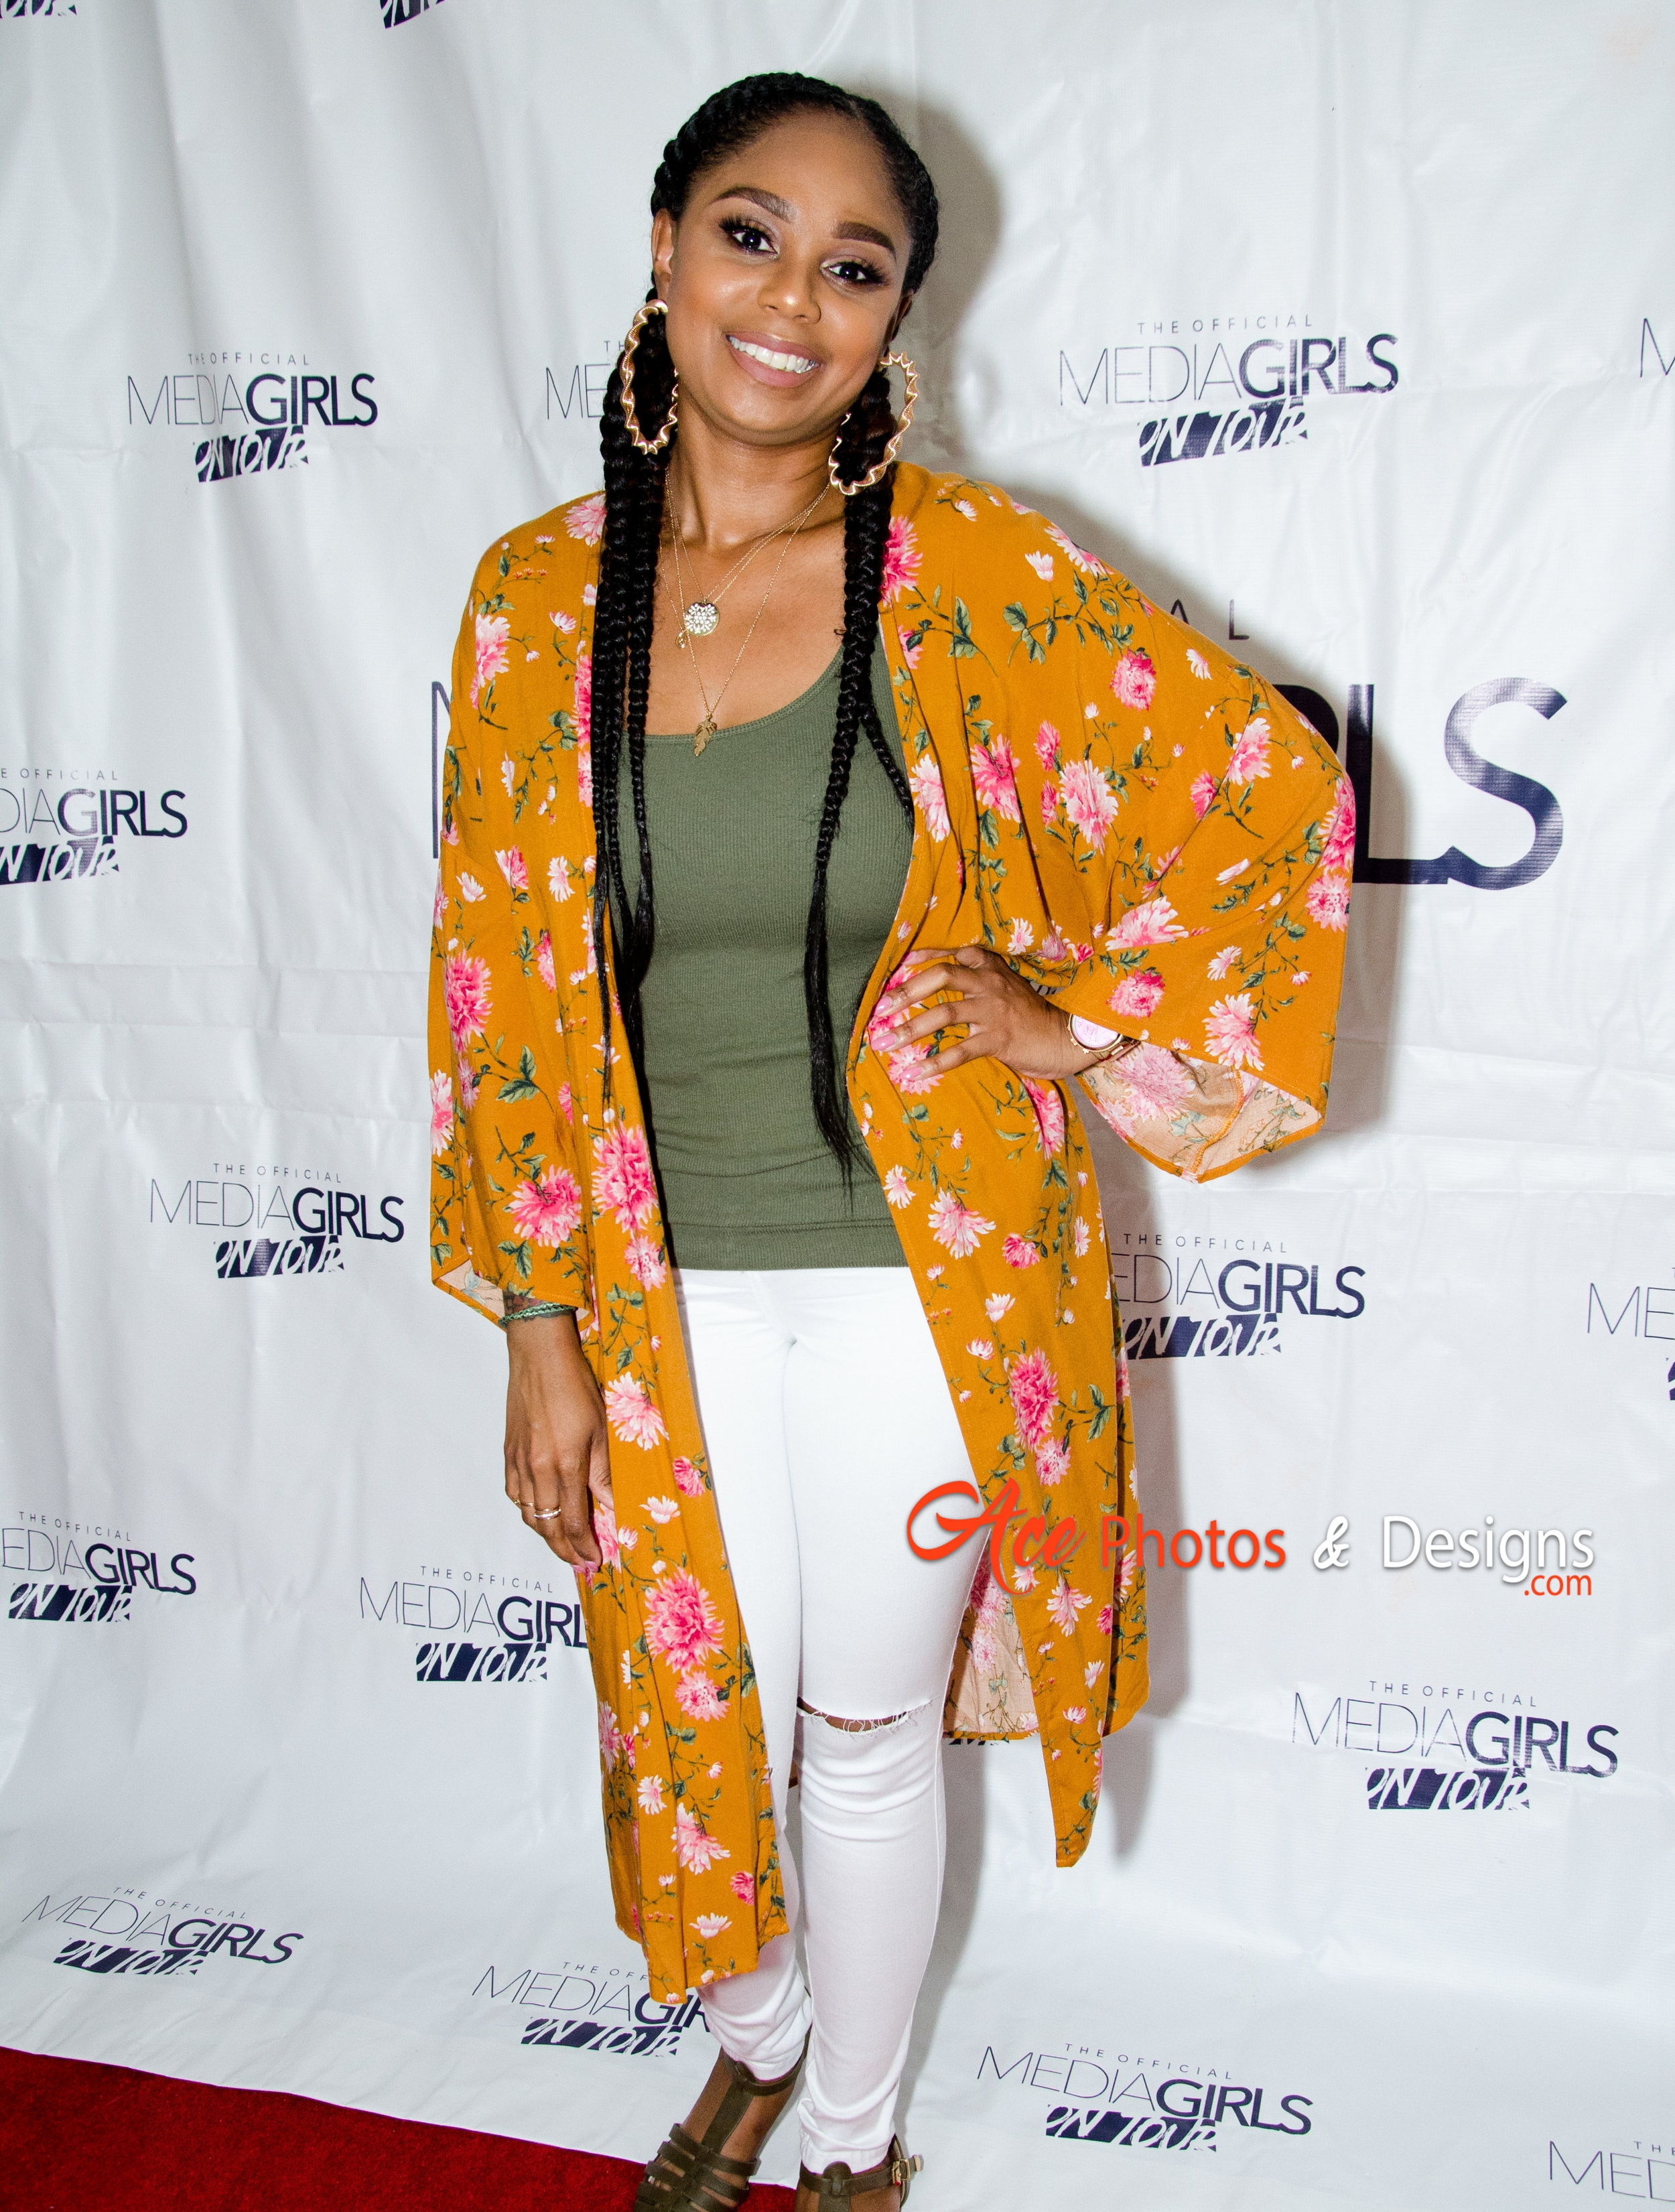 Jennifer J. attends the Media Girls on Tour in Atlanta. Photo cred: Ace Photos and Designs